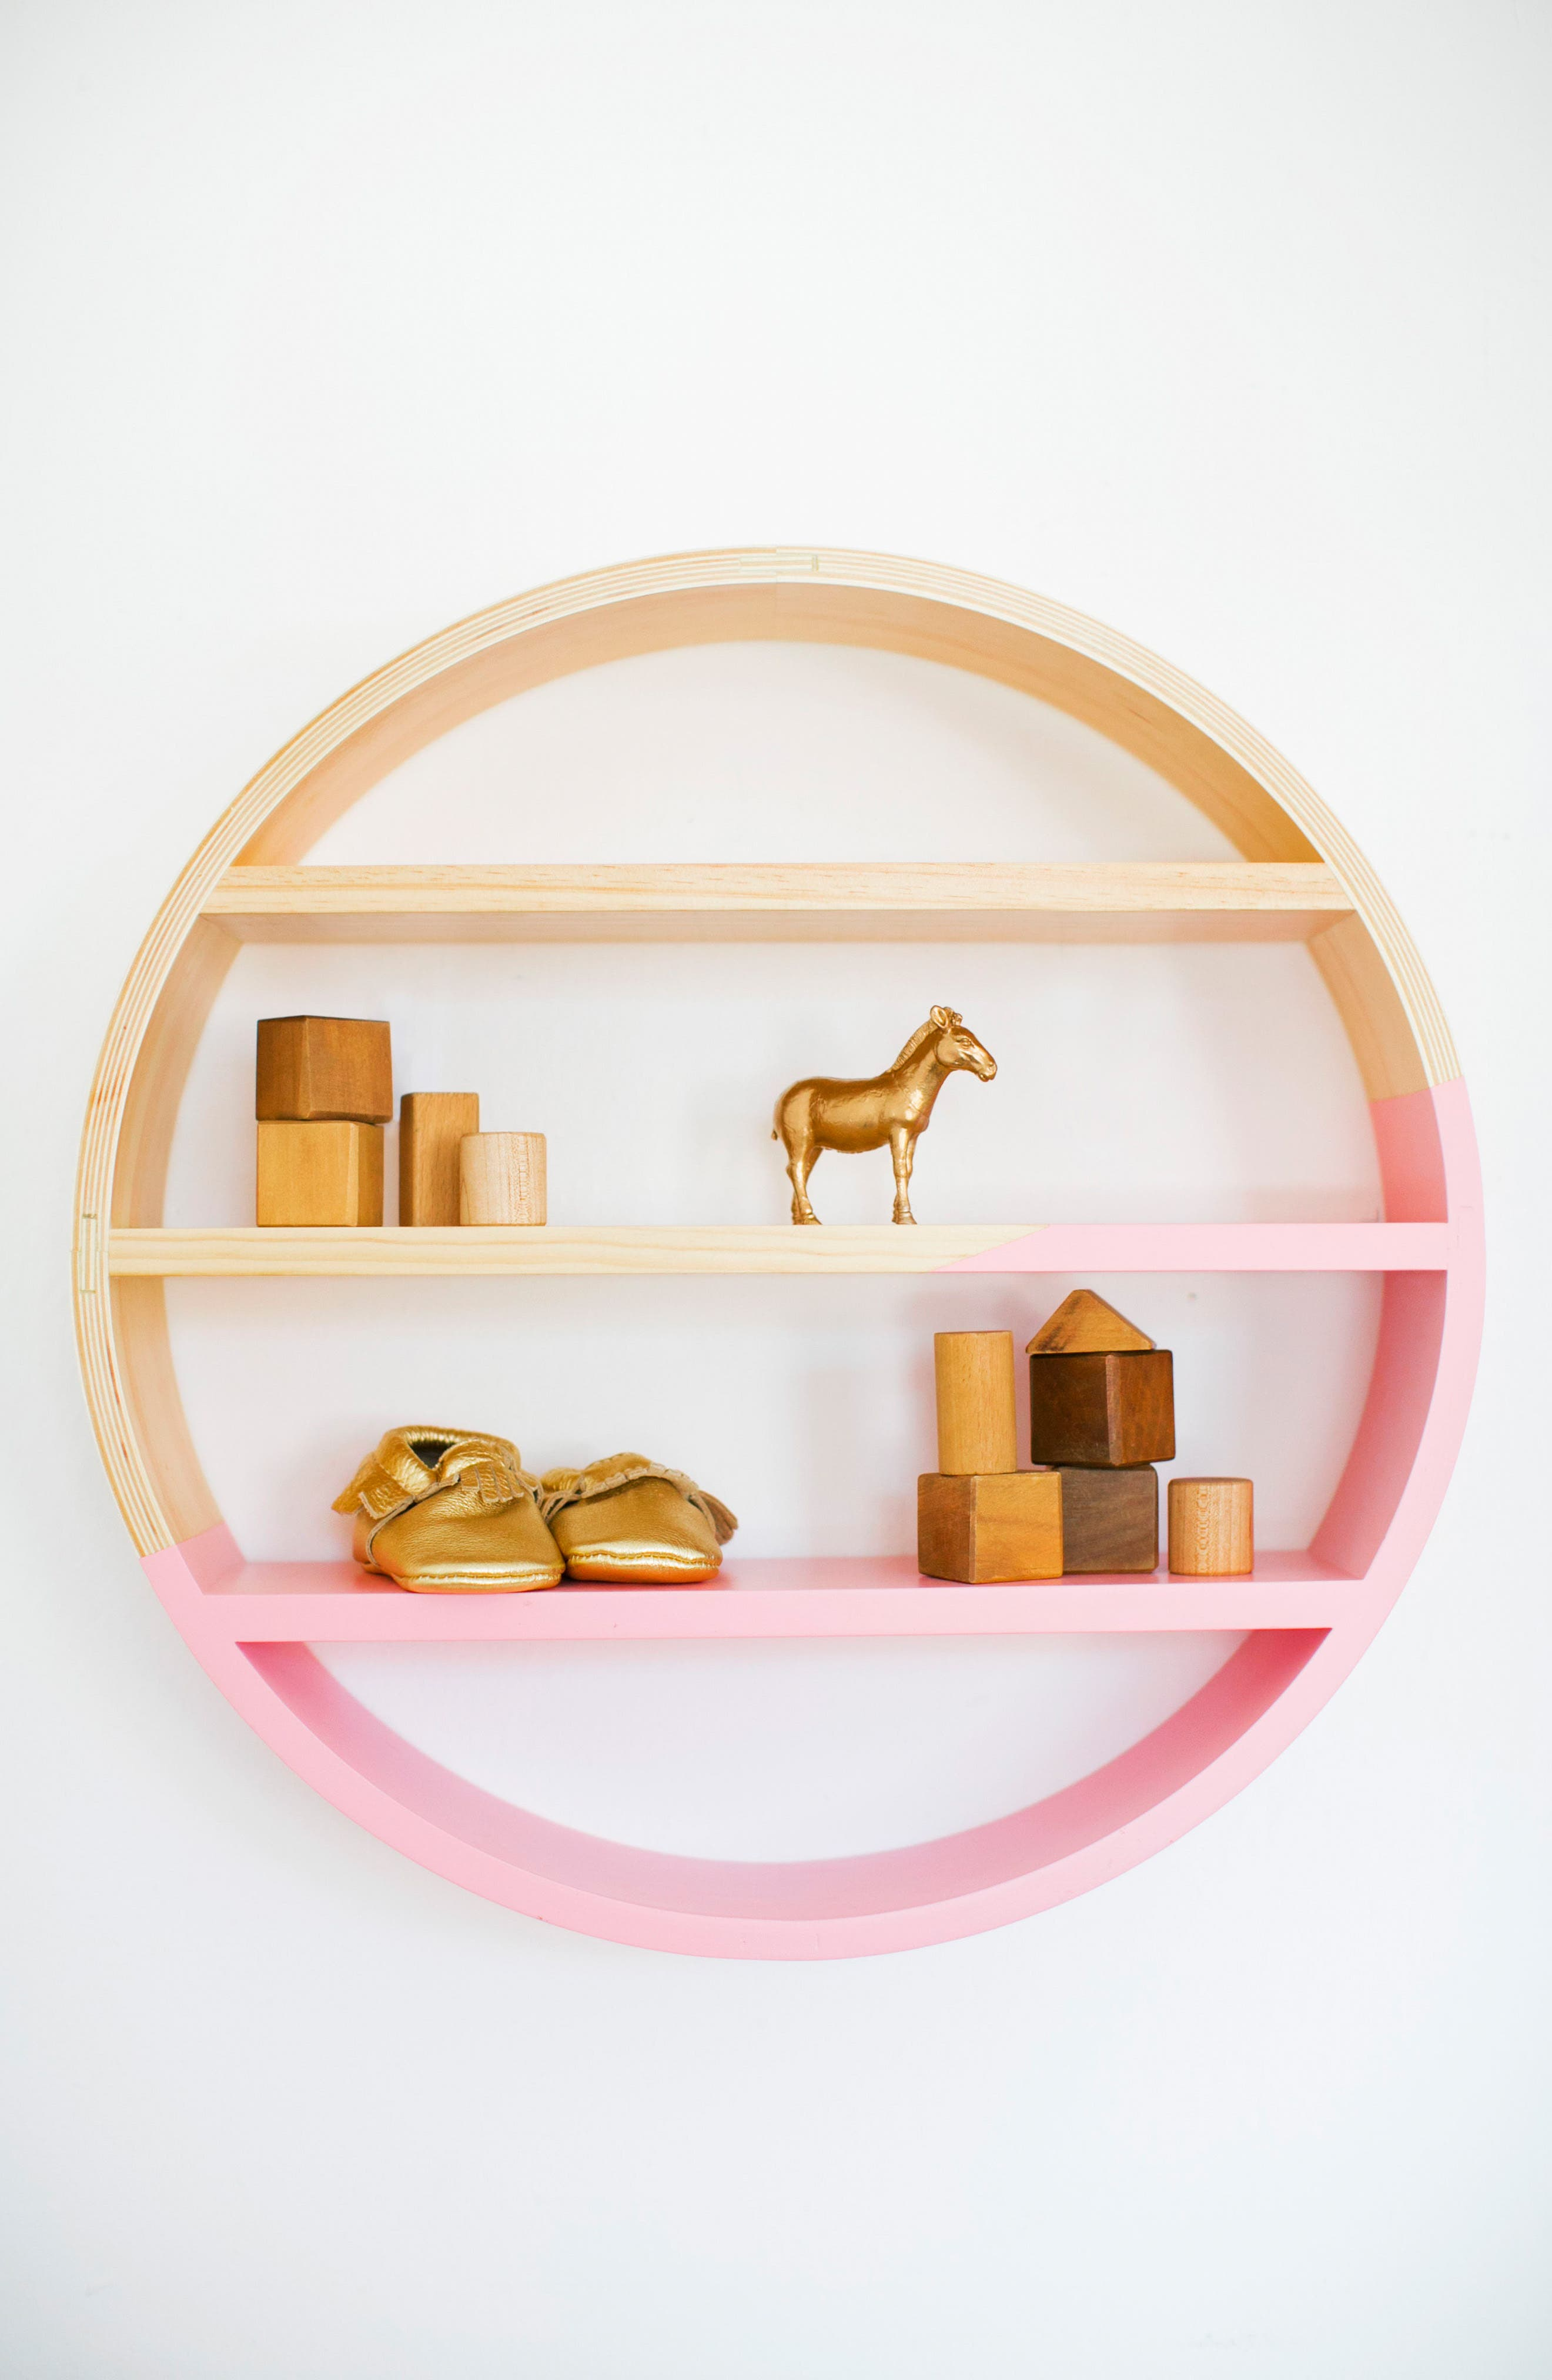 Petunia Pickle Bottom Dreaming in Dax Wooden Wall Shelf